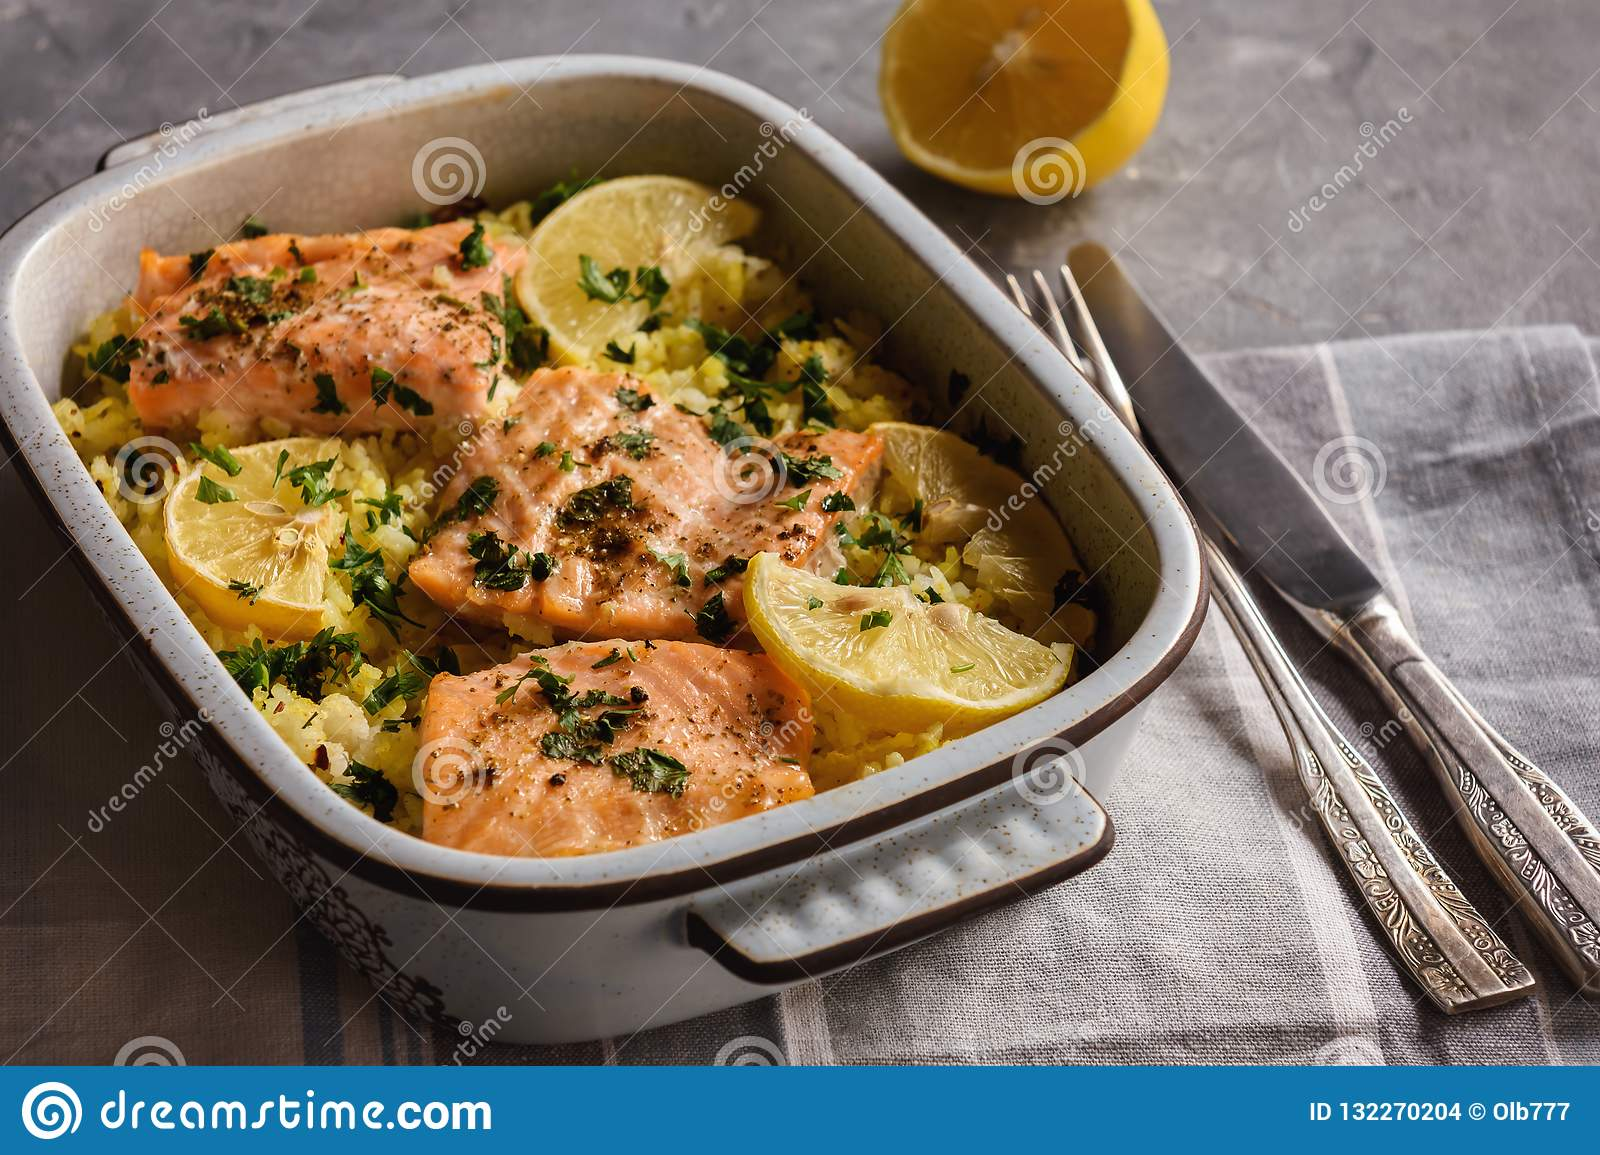 Salmon baked on oven with rice and lemon.